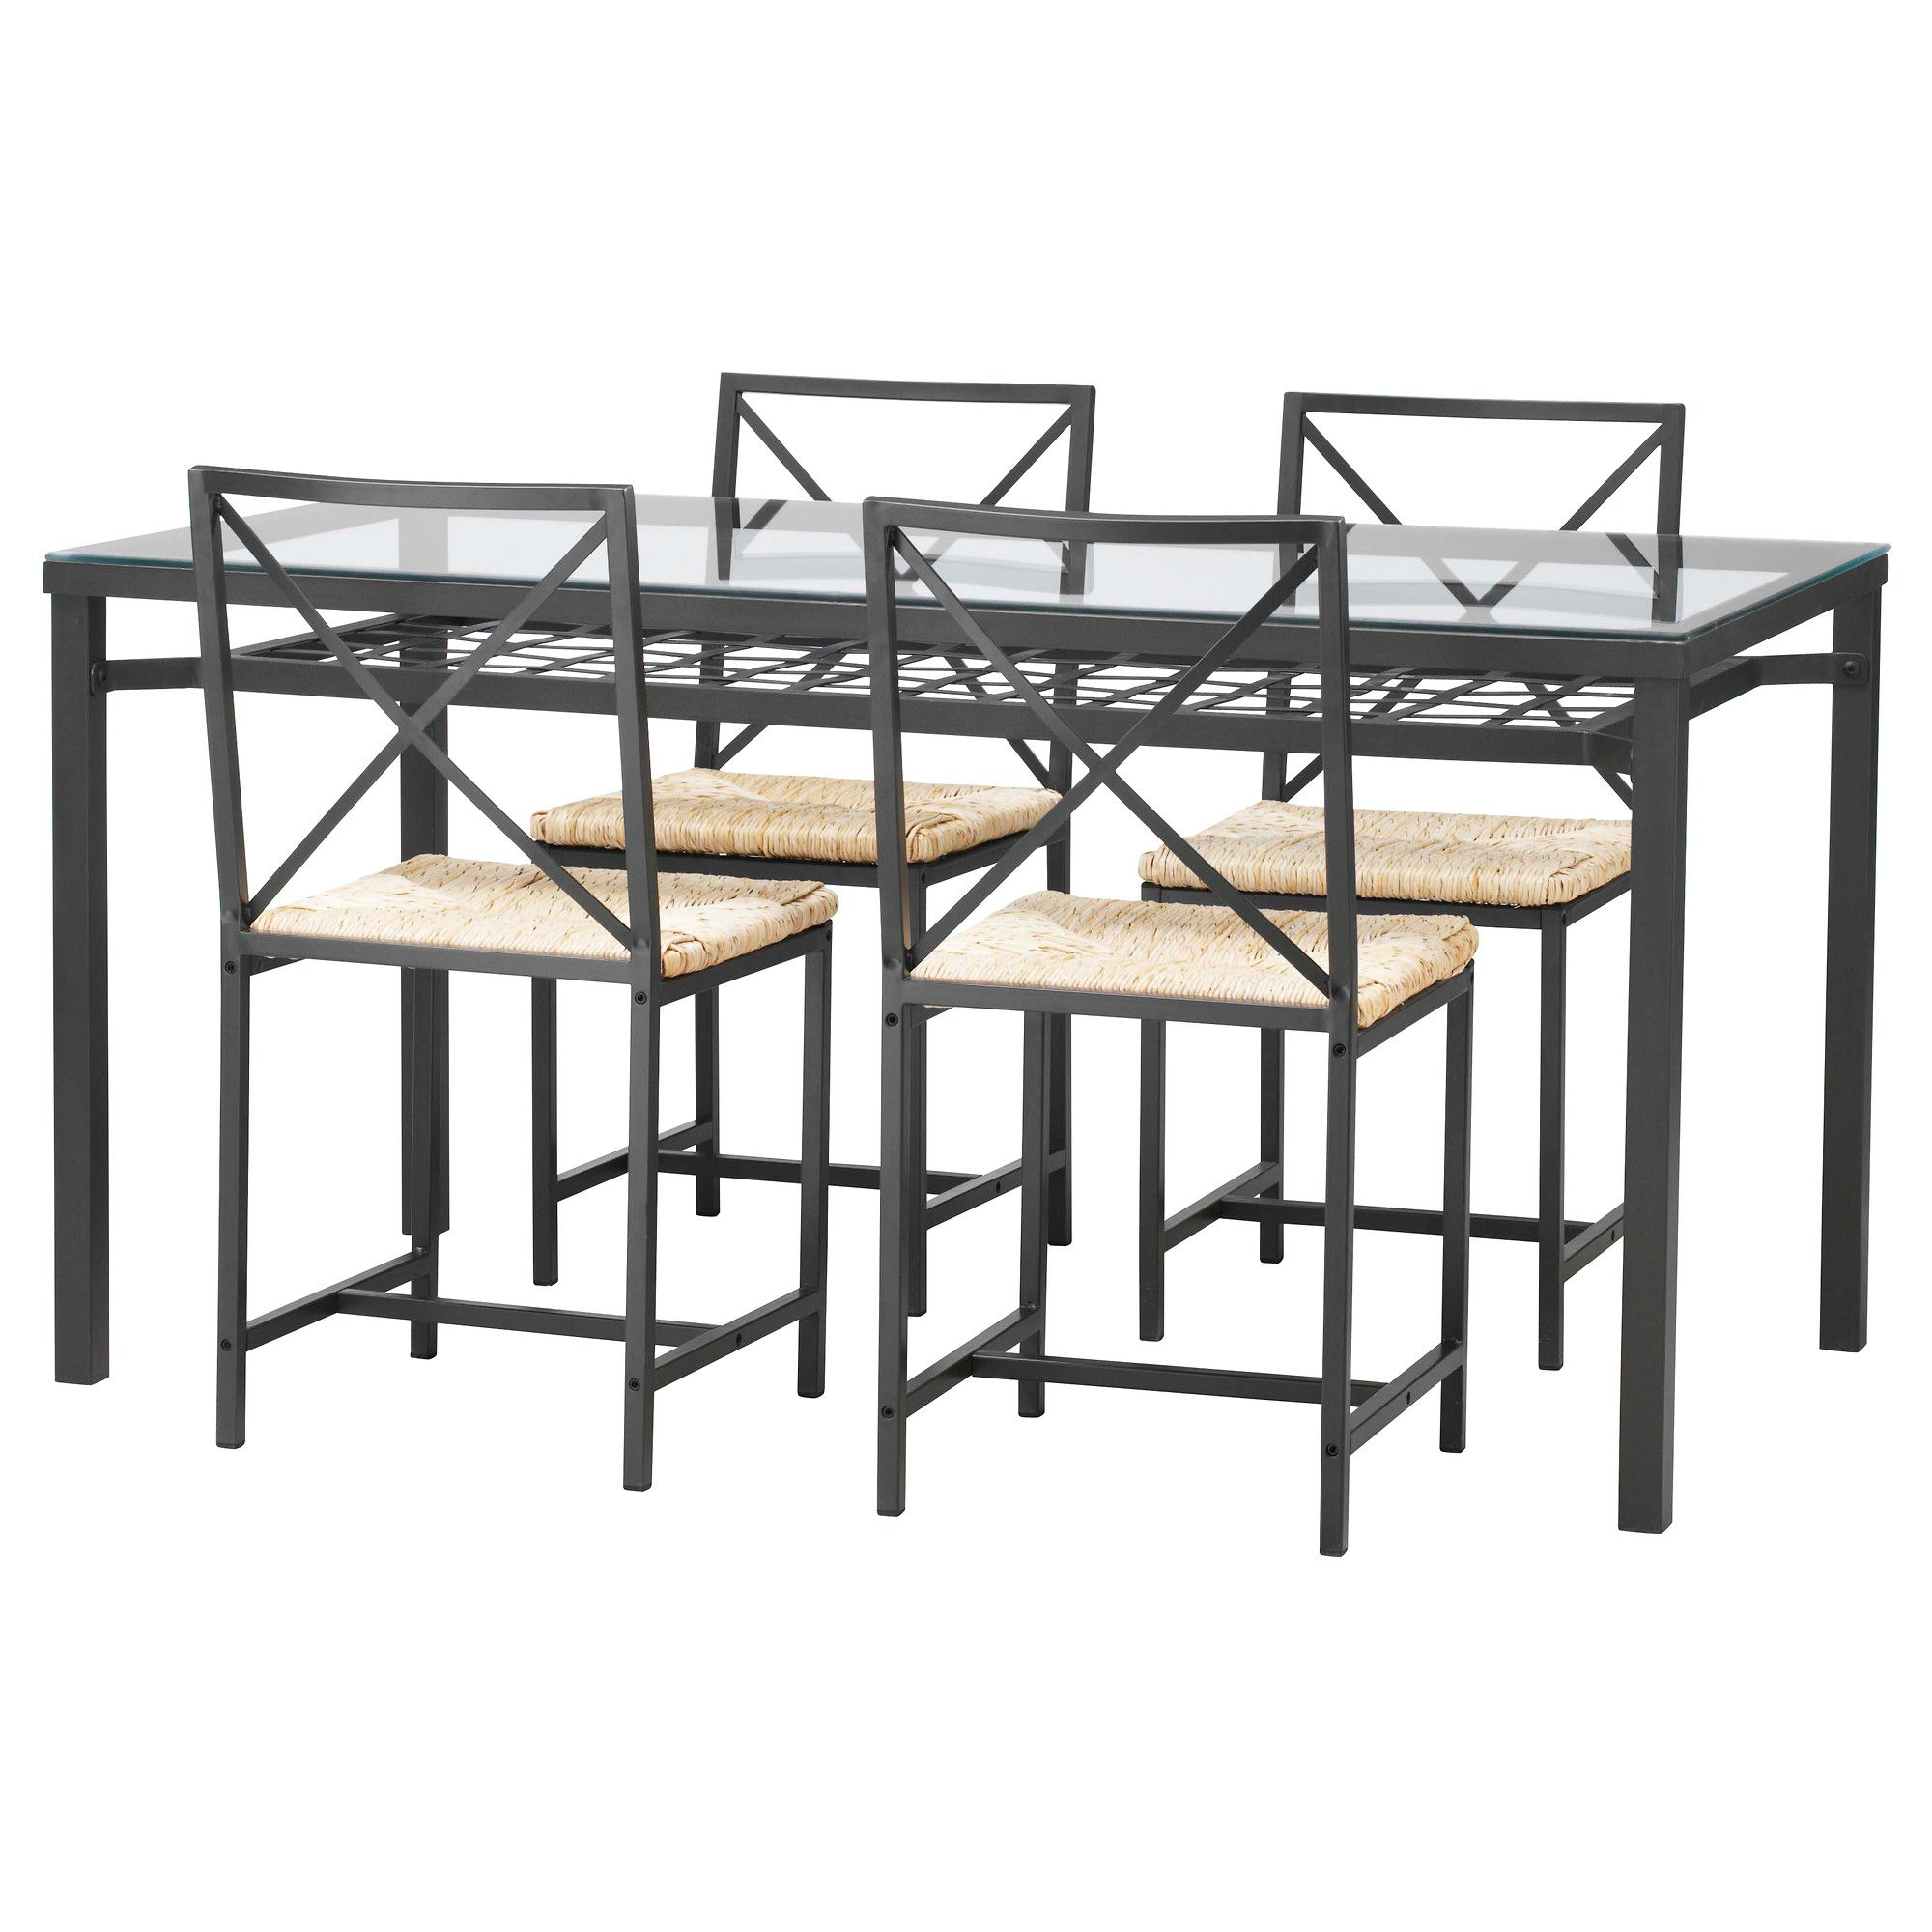 Glass Table And 4 Chairs At Ikea For 180 Theres A Shelf Underneath